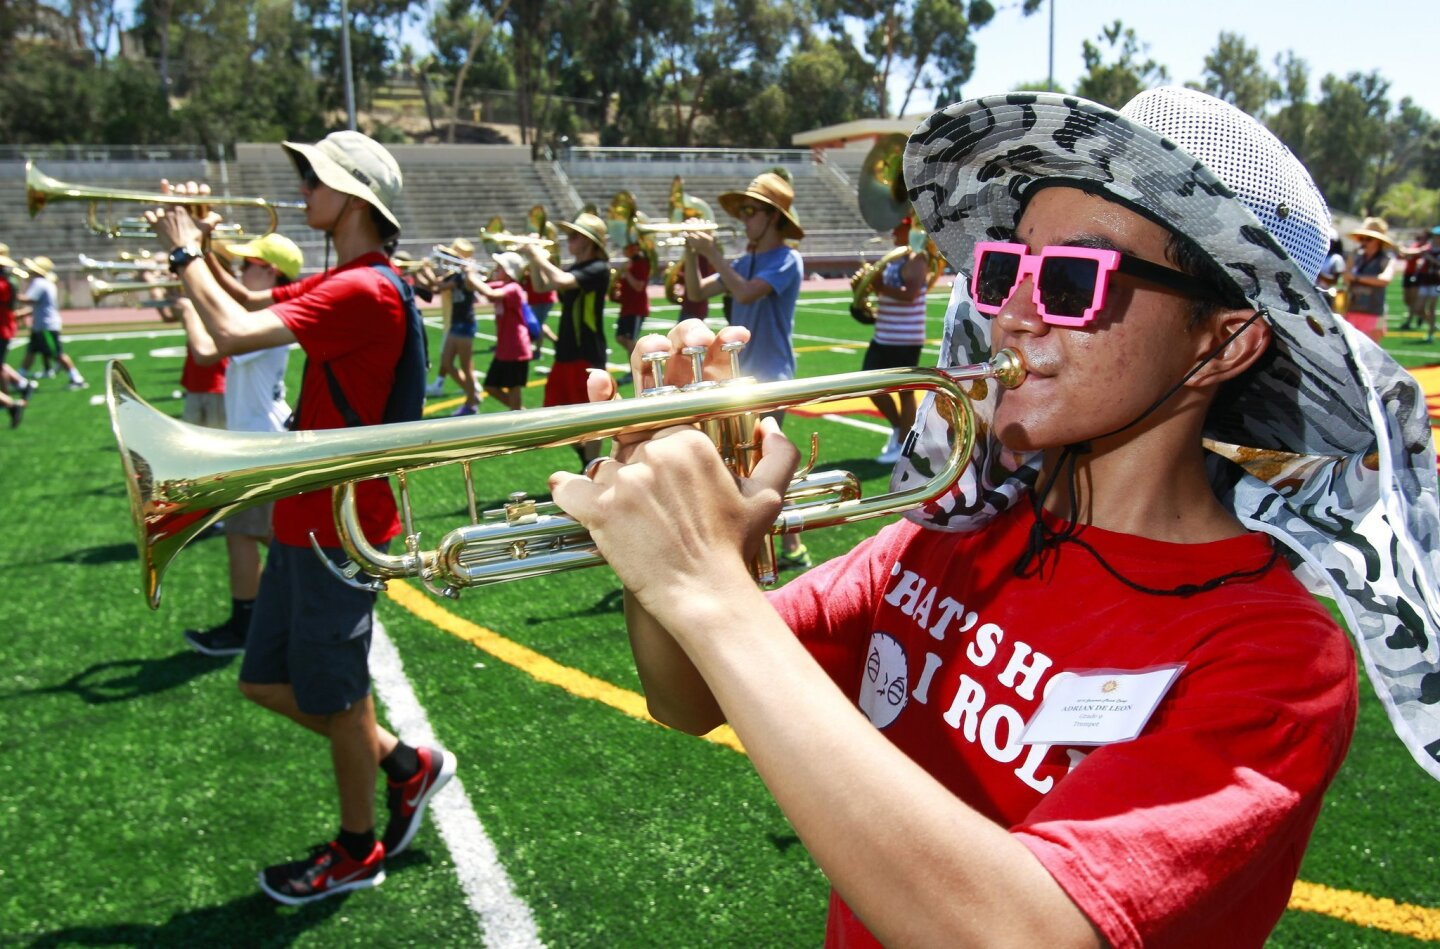 Mt. Carmel Band Camp